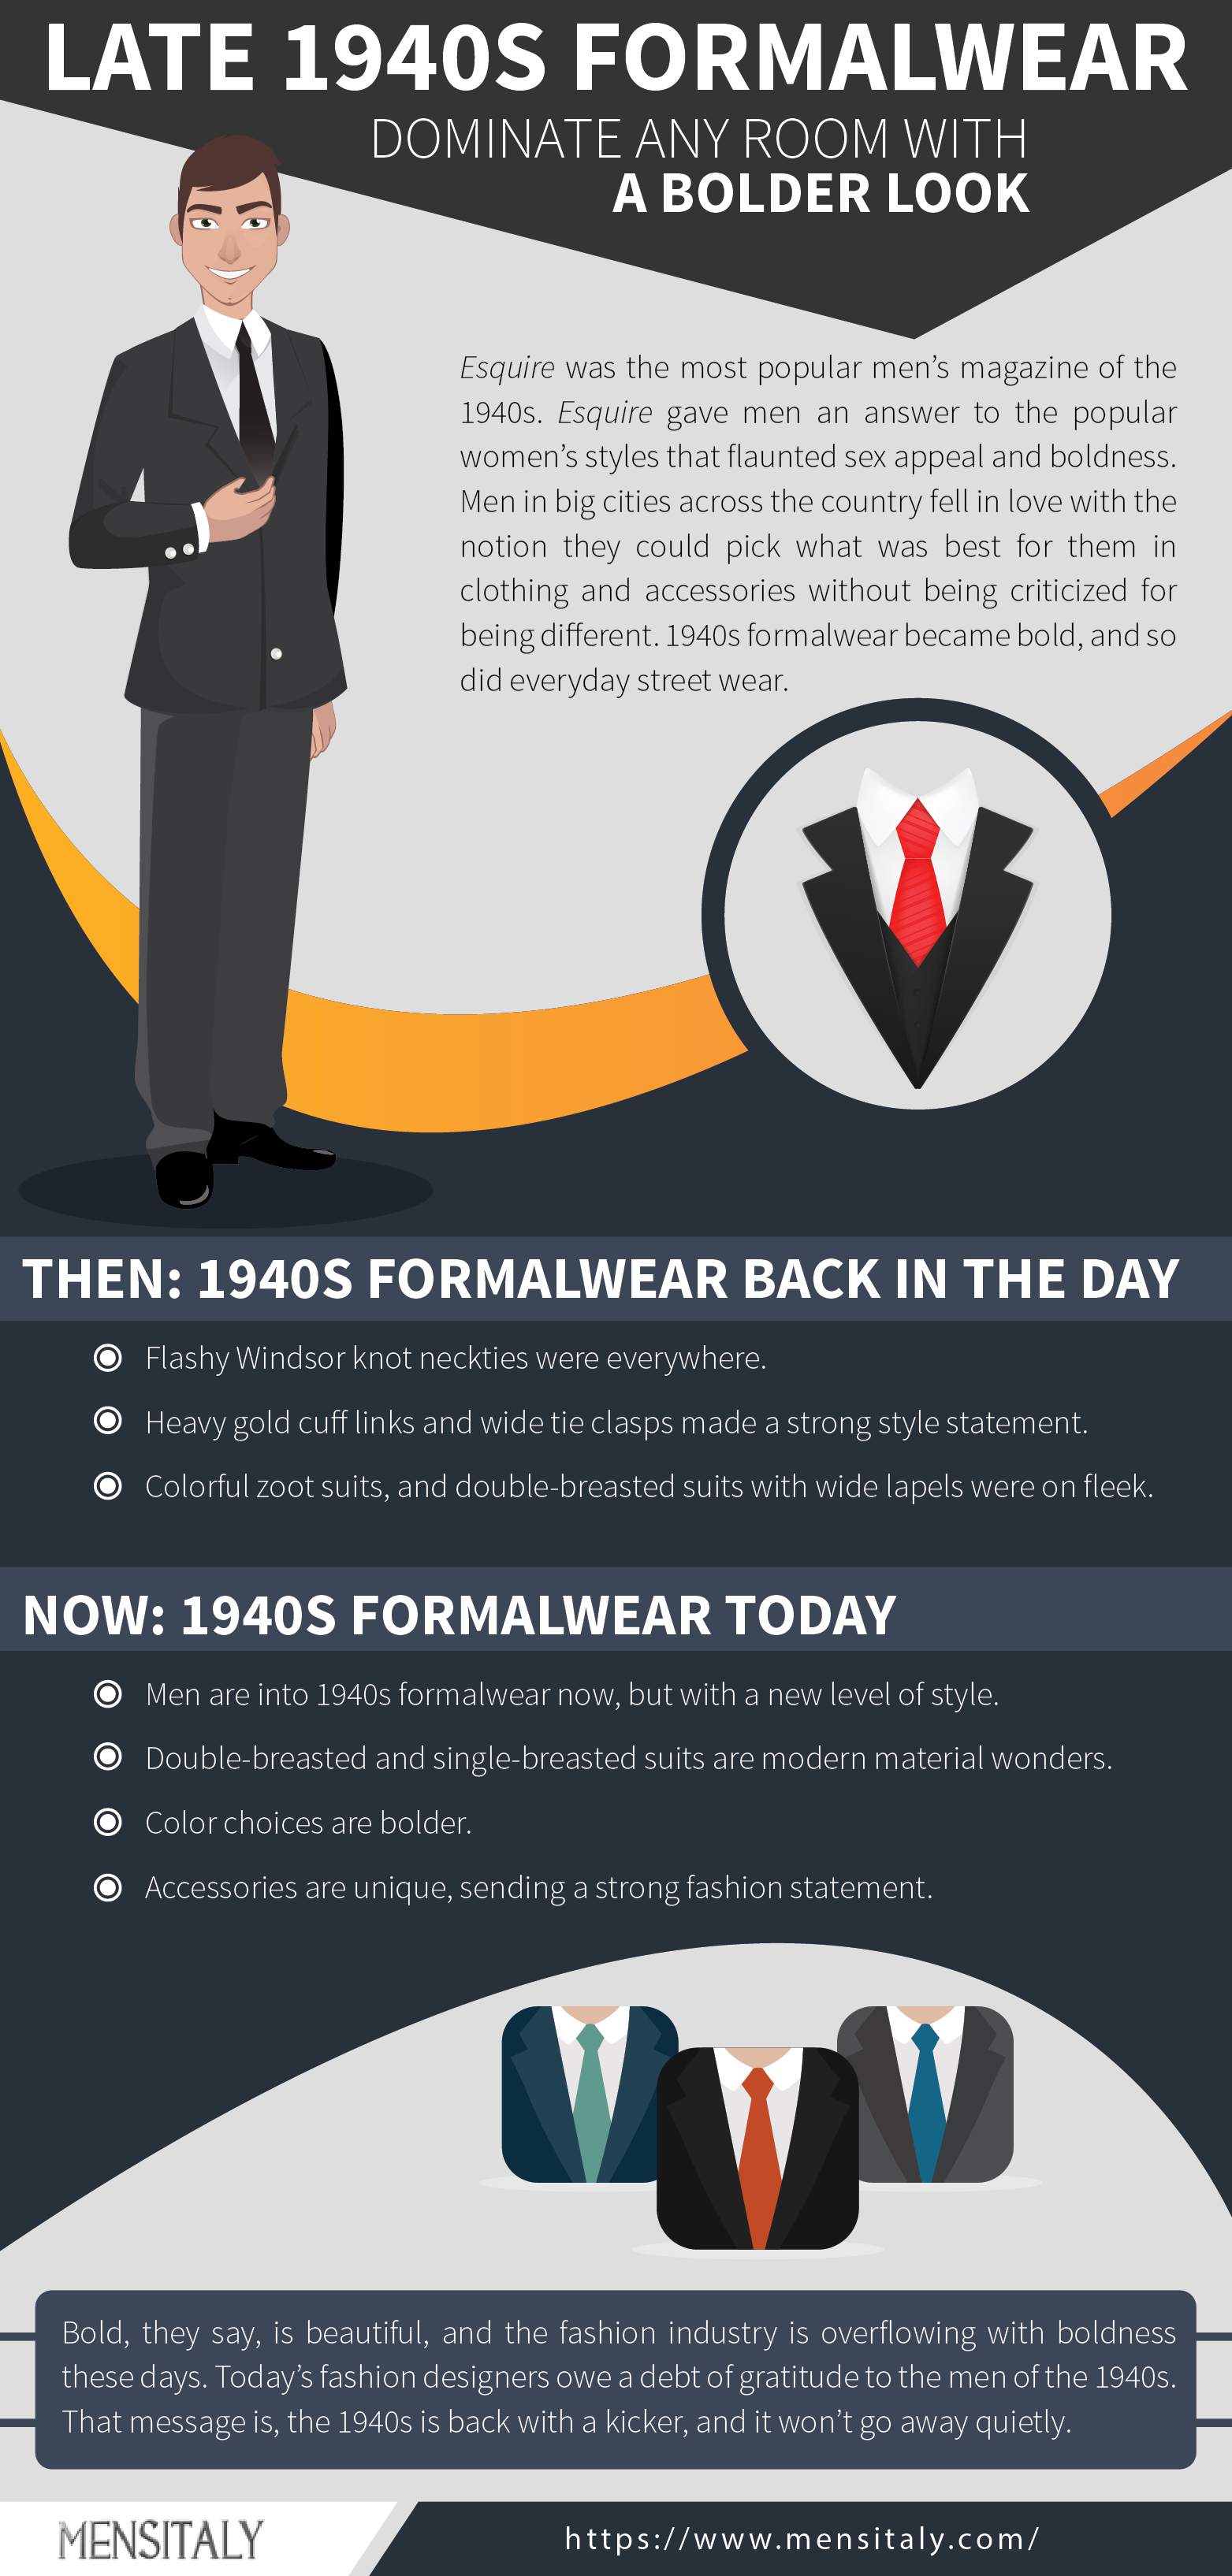 Late 1940s Formalwear: Dominate Any Room with a Bolder Look